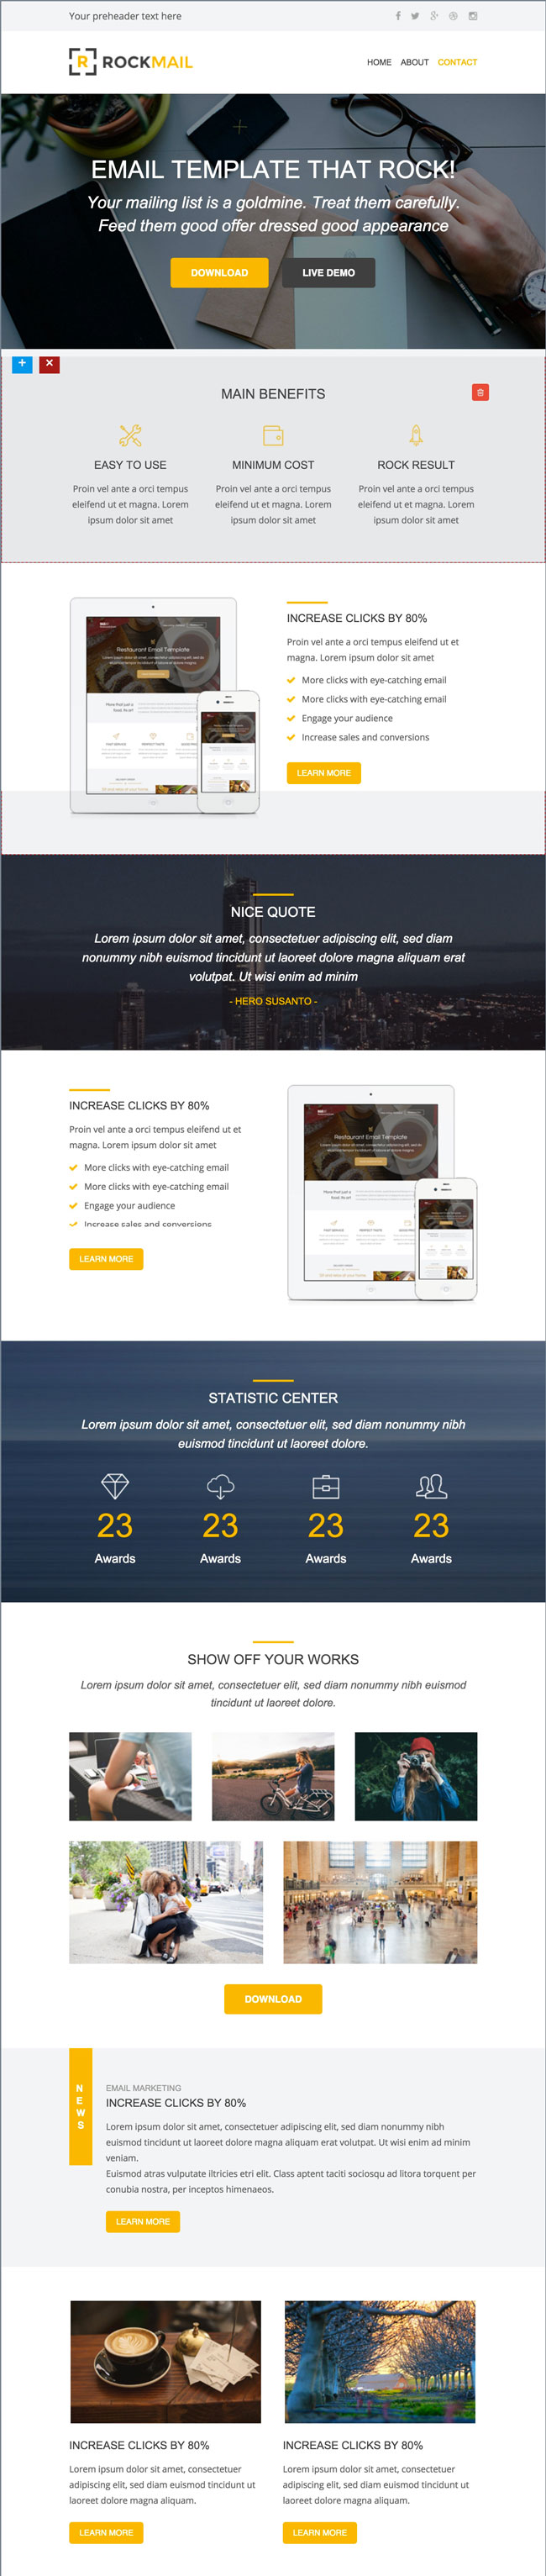 Rockmail-Multipurpose-Email-Builder-Access